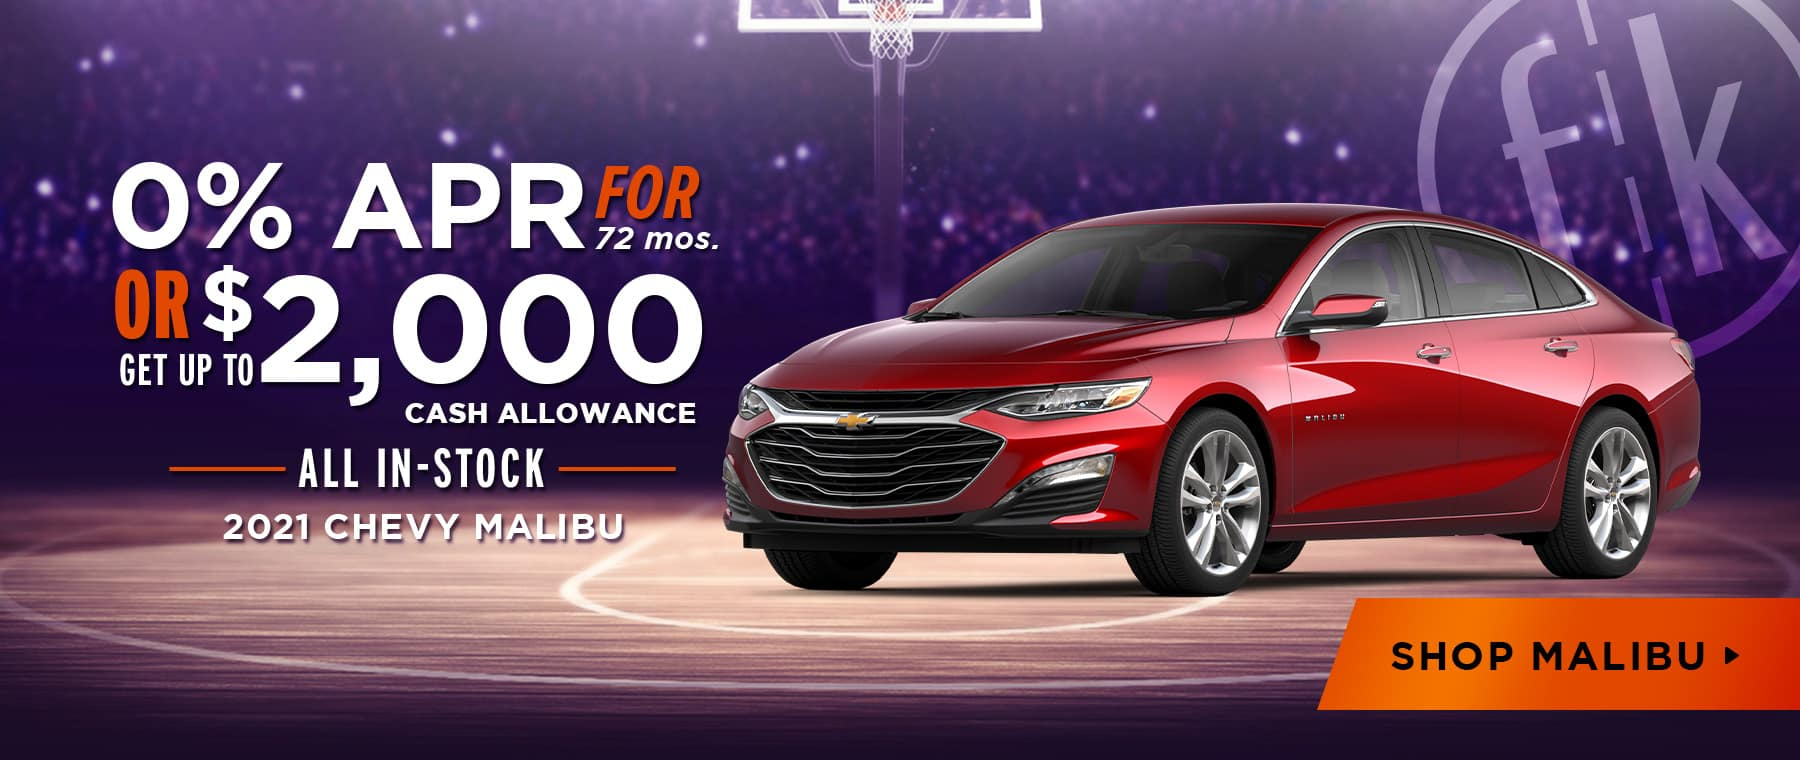 2021 Malibu 0% for 72 mos OR Up To $2,000 Customer Cash